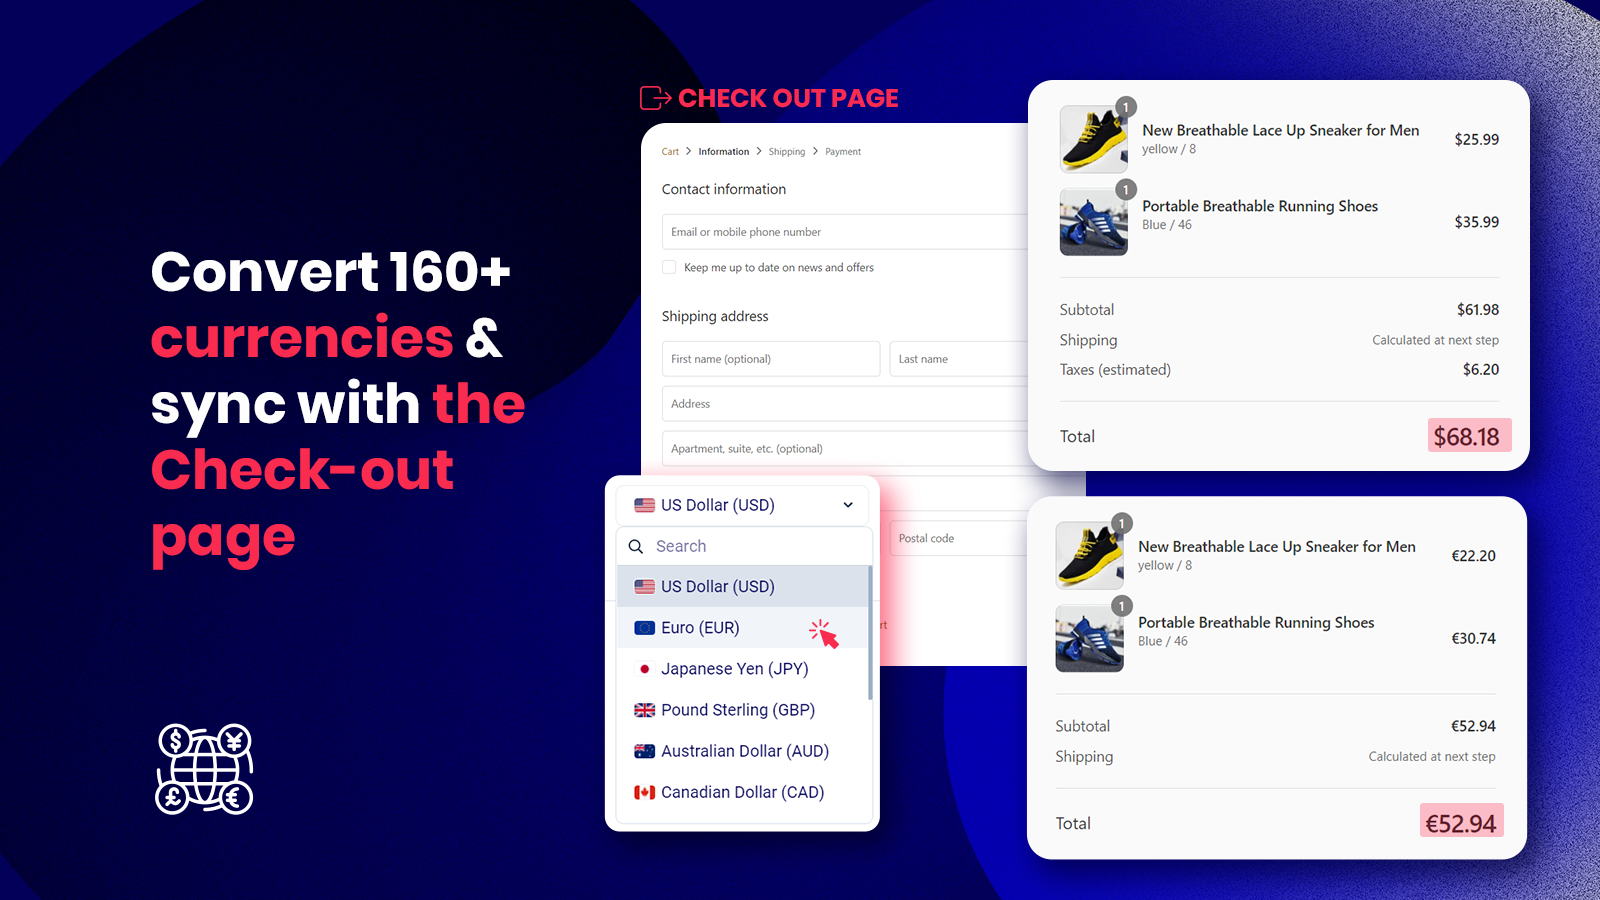 Convert 160+ currencies & sync with the Check-out page